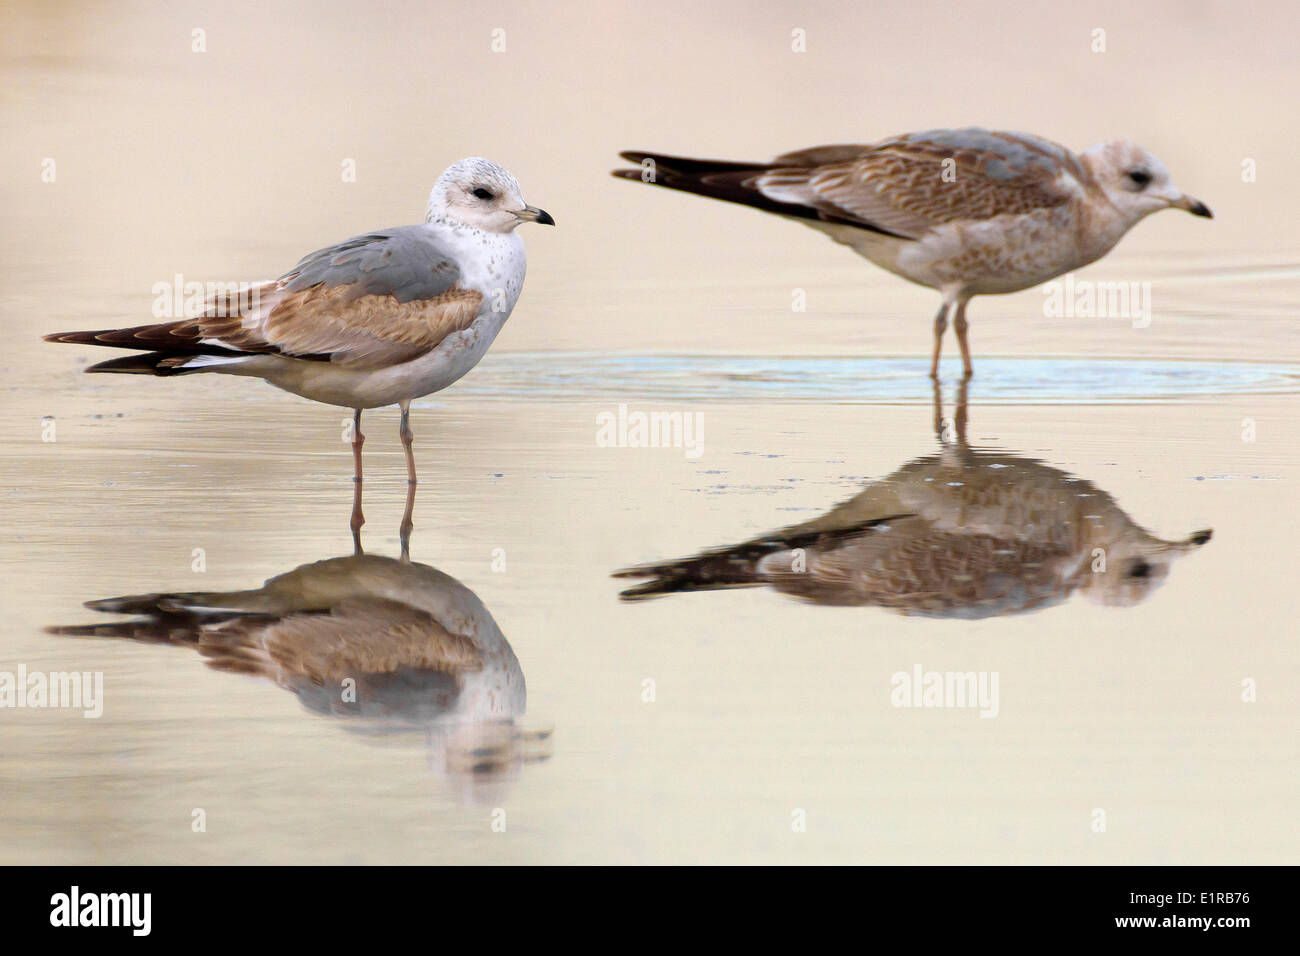 Two immature Commob Gulls in shallow water with reflection. - Stock Image